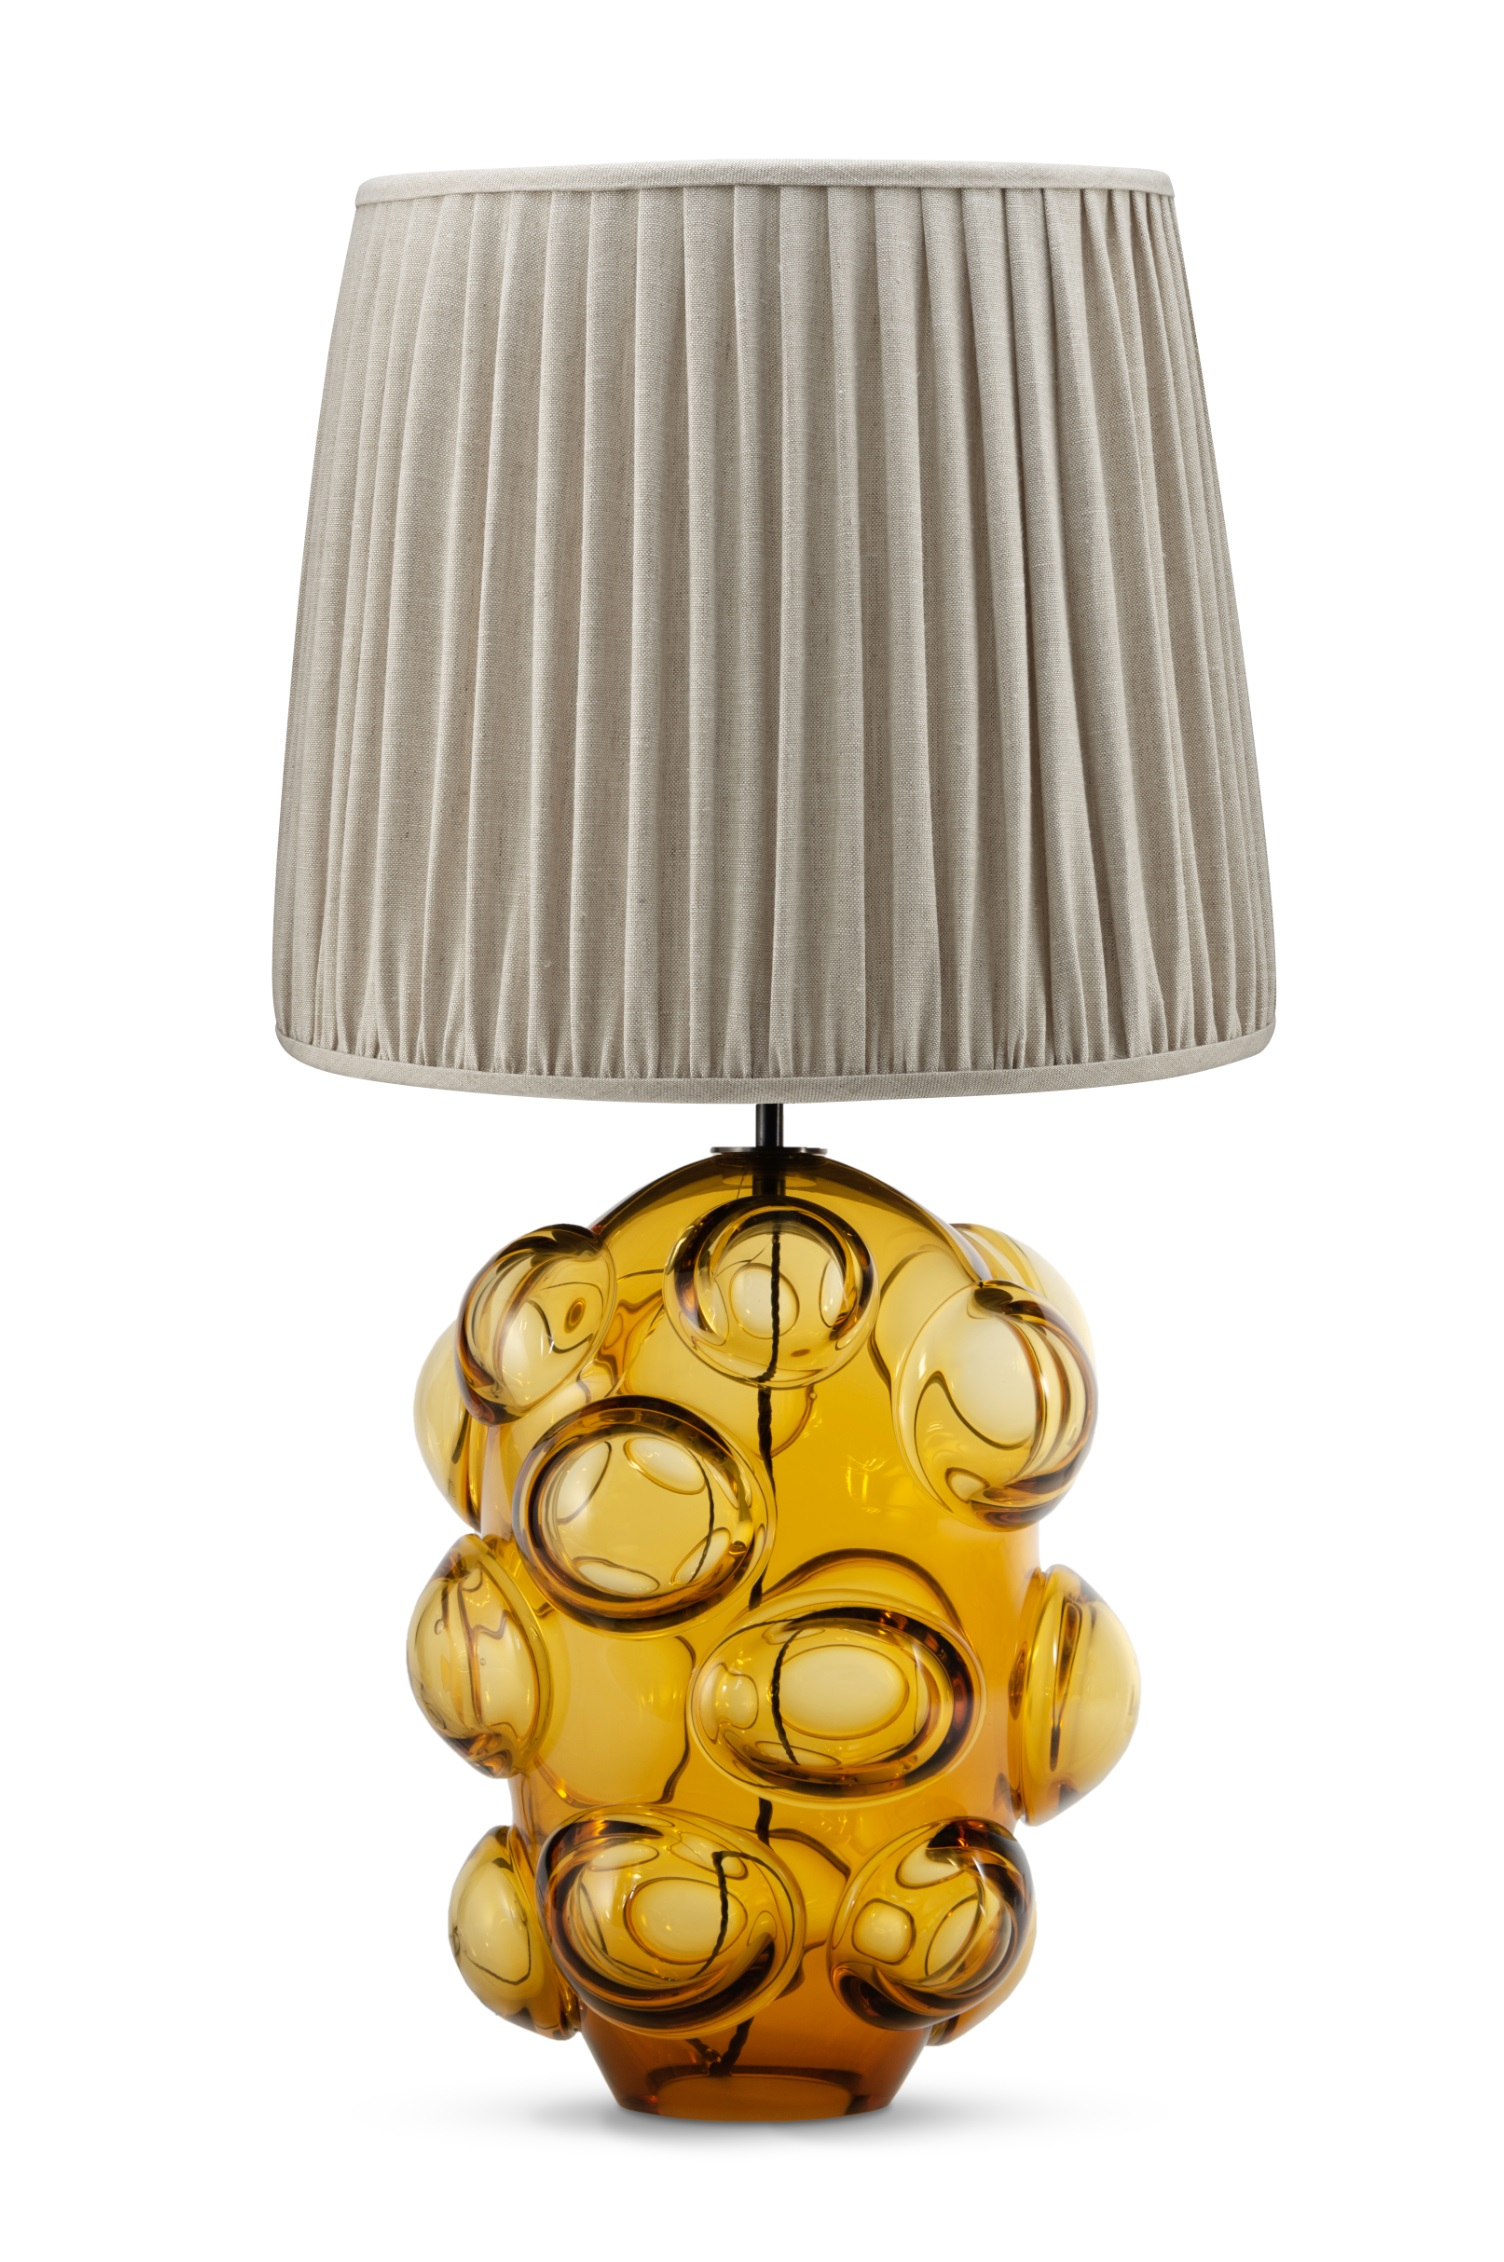 It S A Wonderful Light 14 Graceful Pretty And Grand Ways To Brighten Up Your Home Country Life